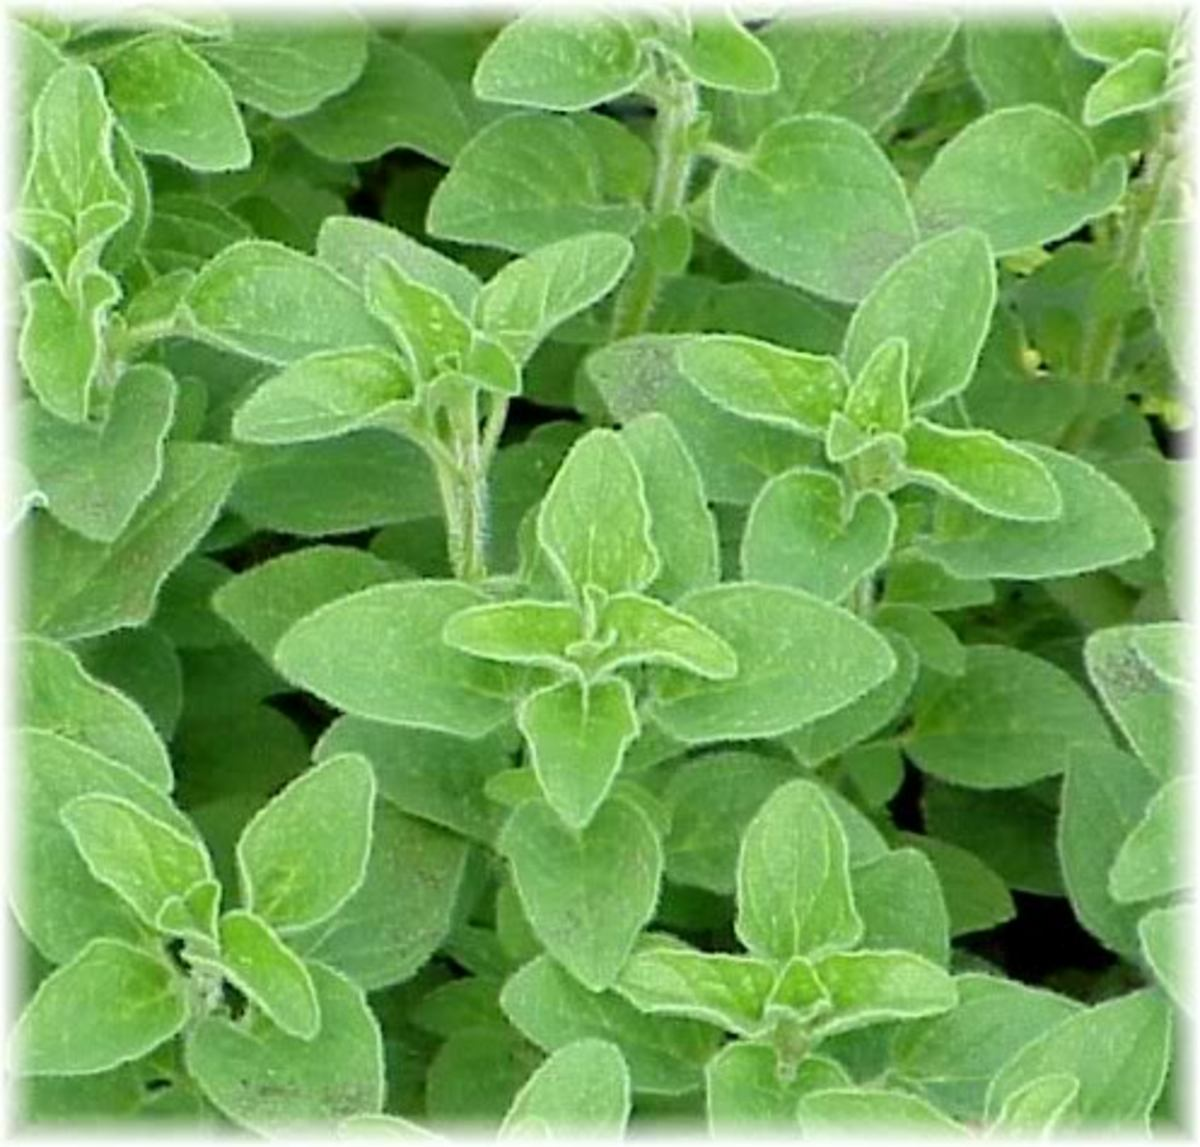 The herb Oregano which is quite successful in treating MRSA